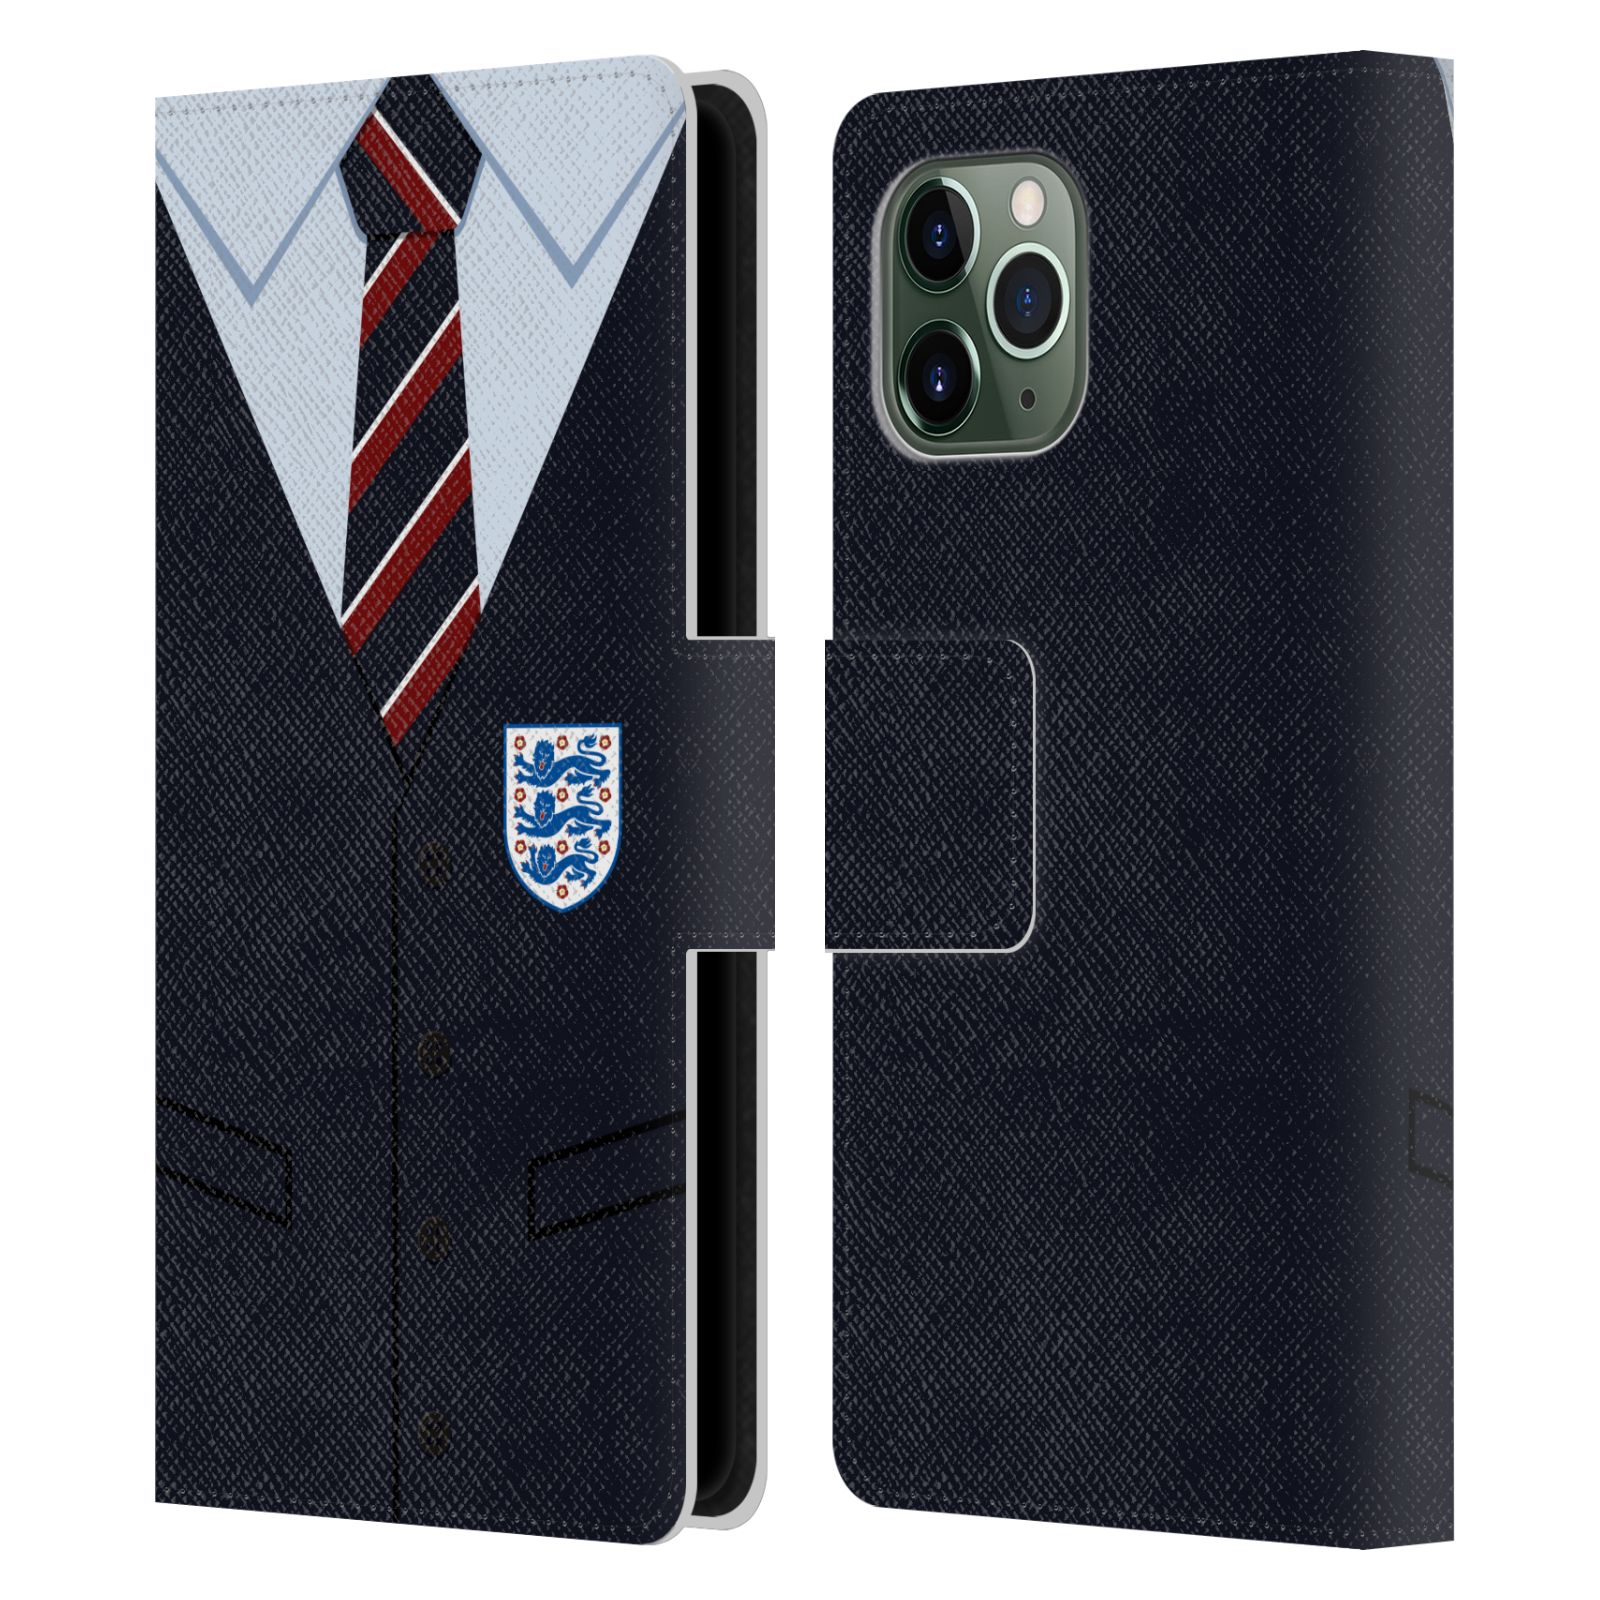 Official England National Football Team 2018/19 Crest Southgate Waistcoat Leather Book Wallet Case For Apple iPhone 11 Pro